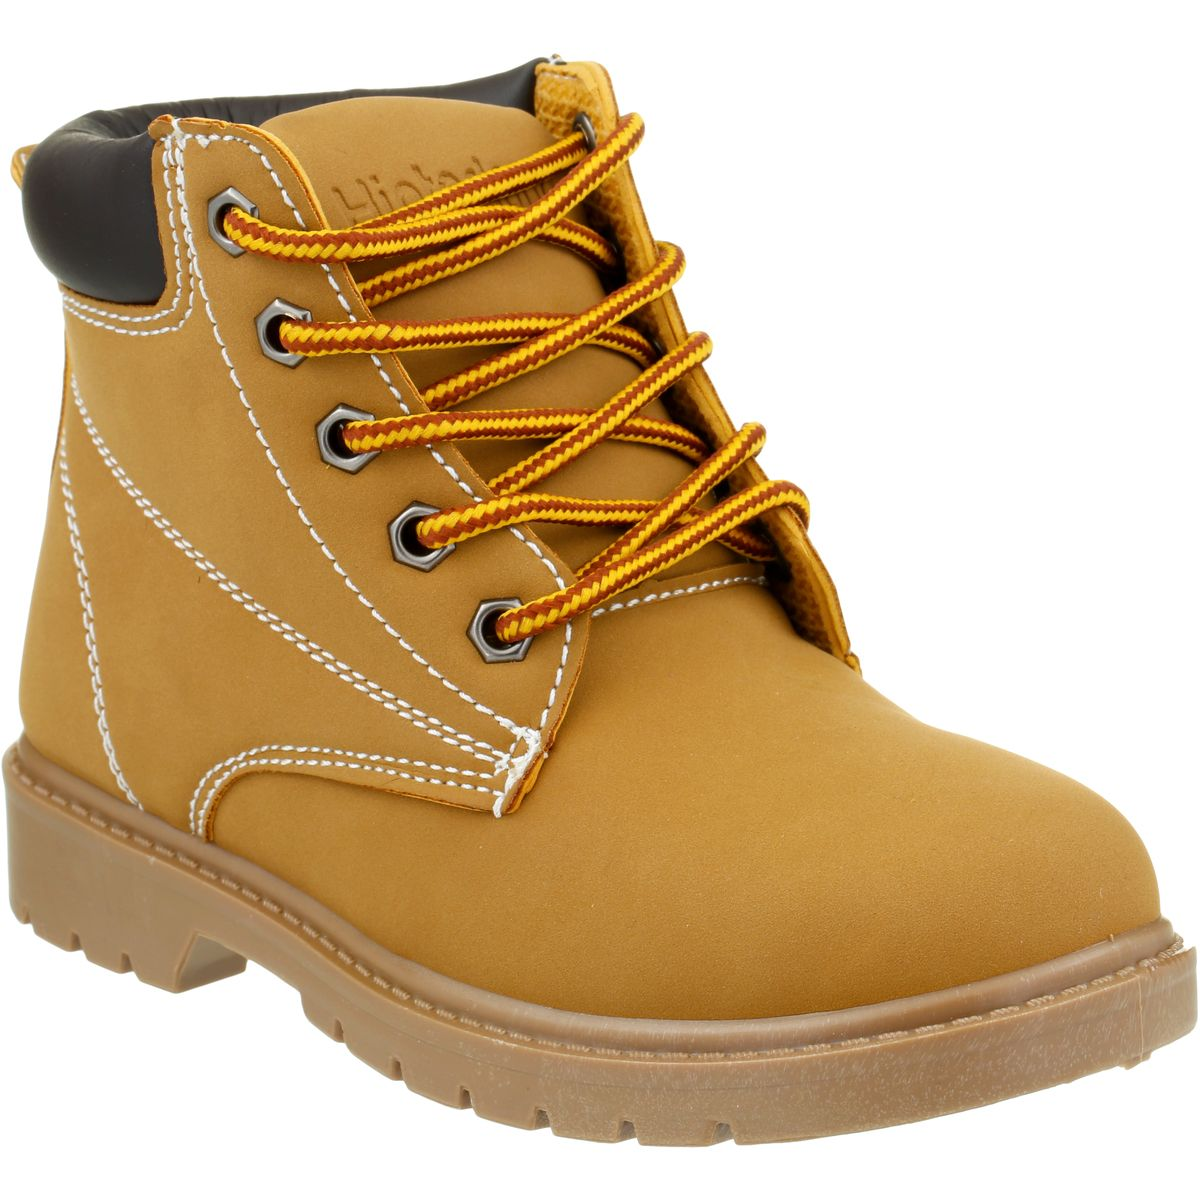 Hinterland Boys Lace Up Boot - Brown